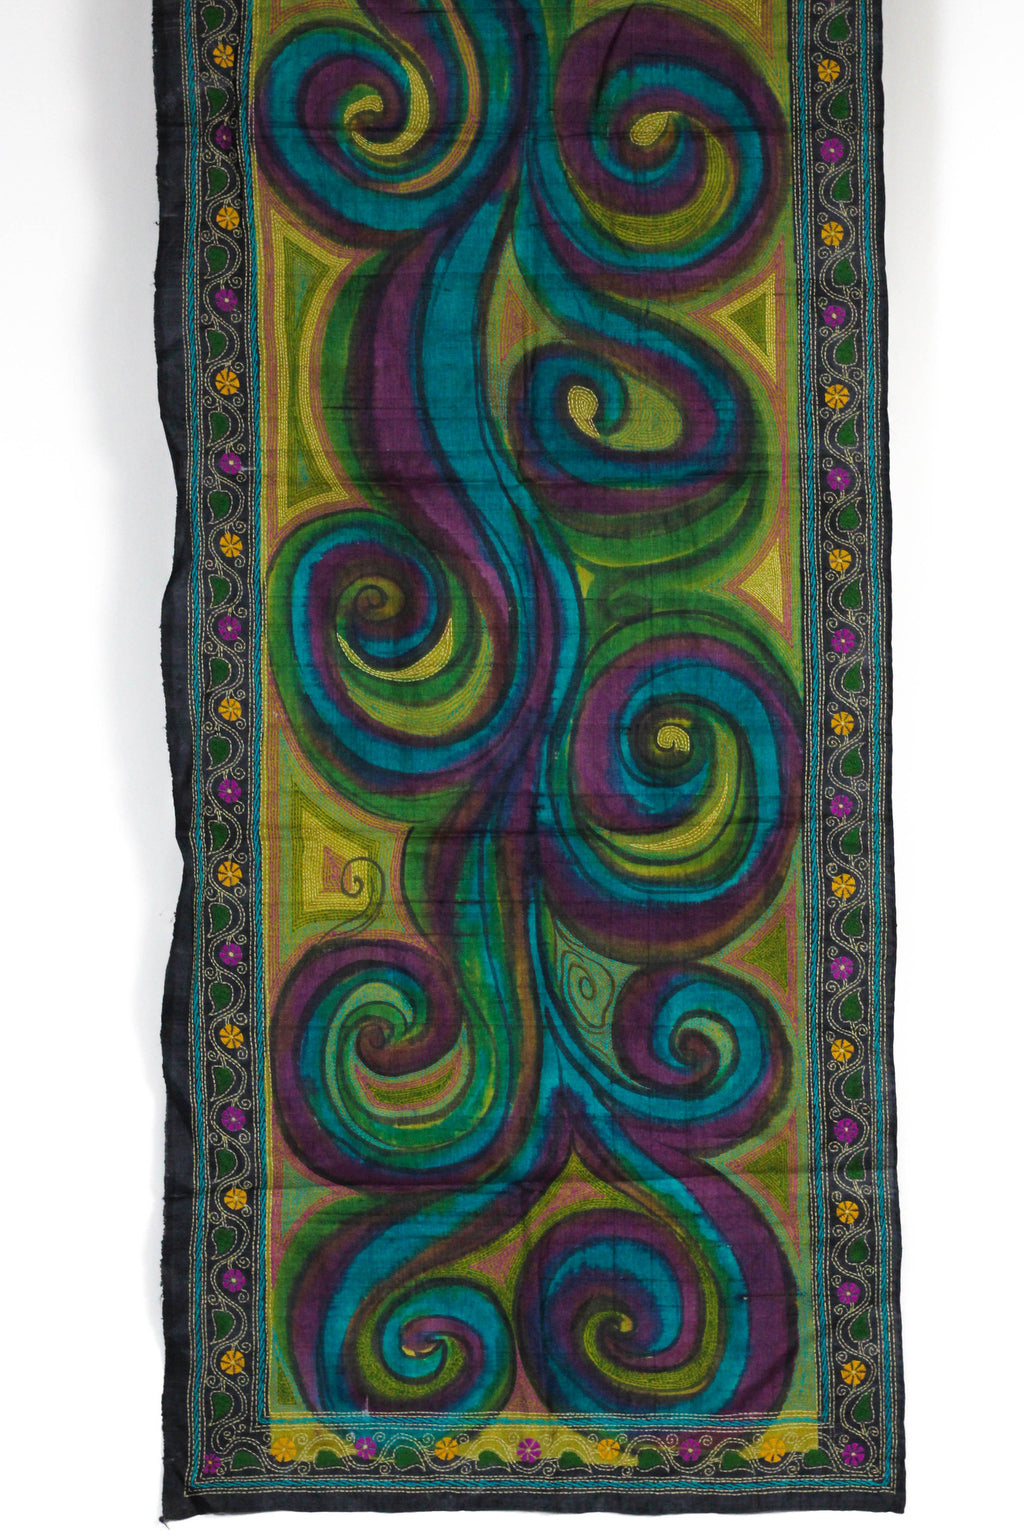 The Mystique kantha scarf